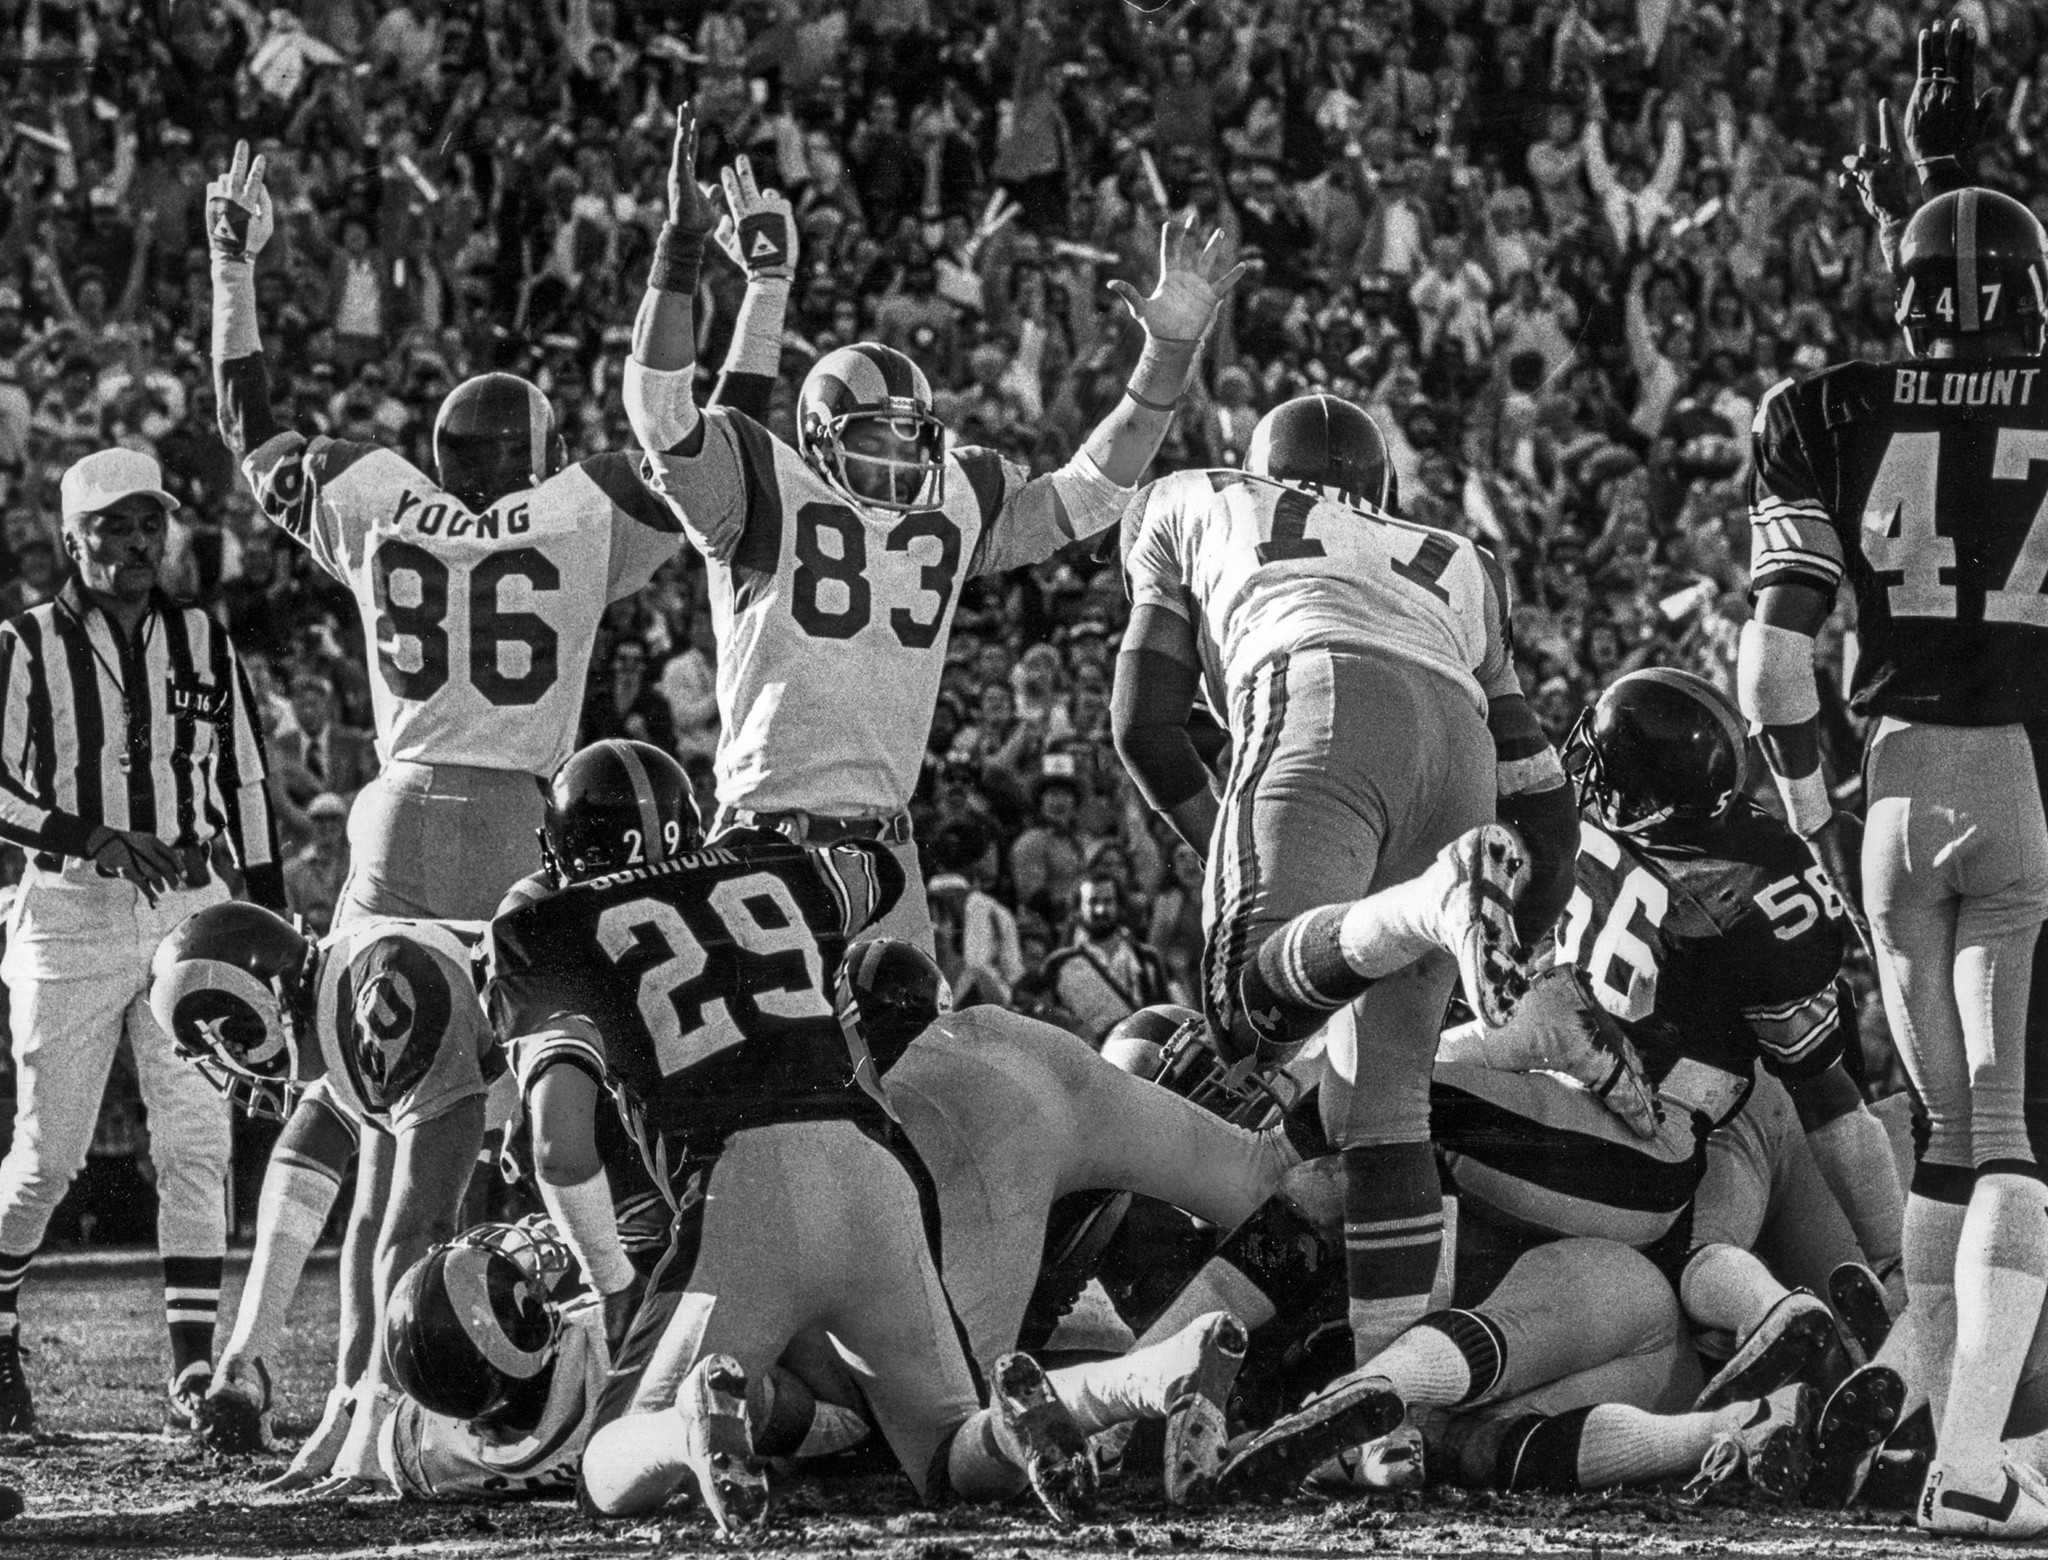 Jan. 20, 1980: Charle Young (86) and Terry Nelson (83) of the Rams signal touchdown after Cullen Bry